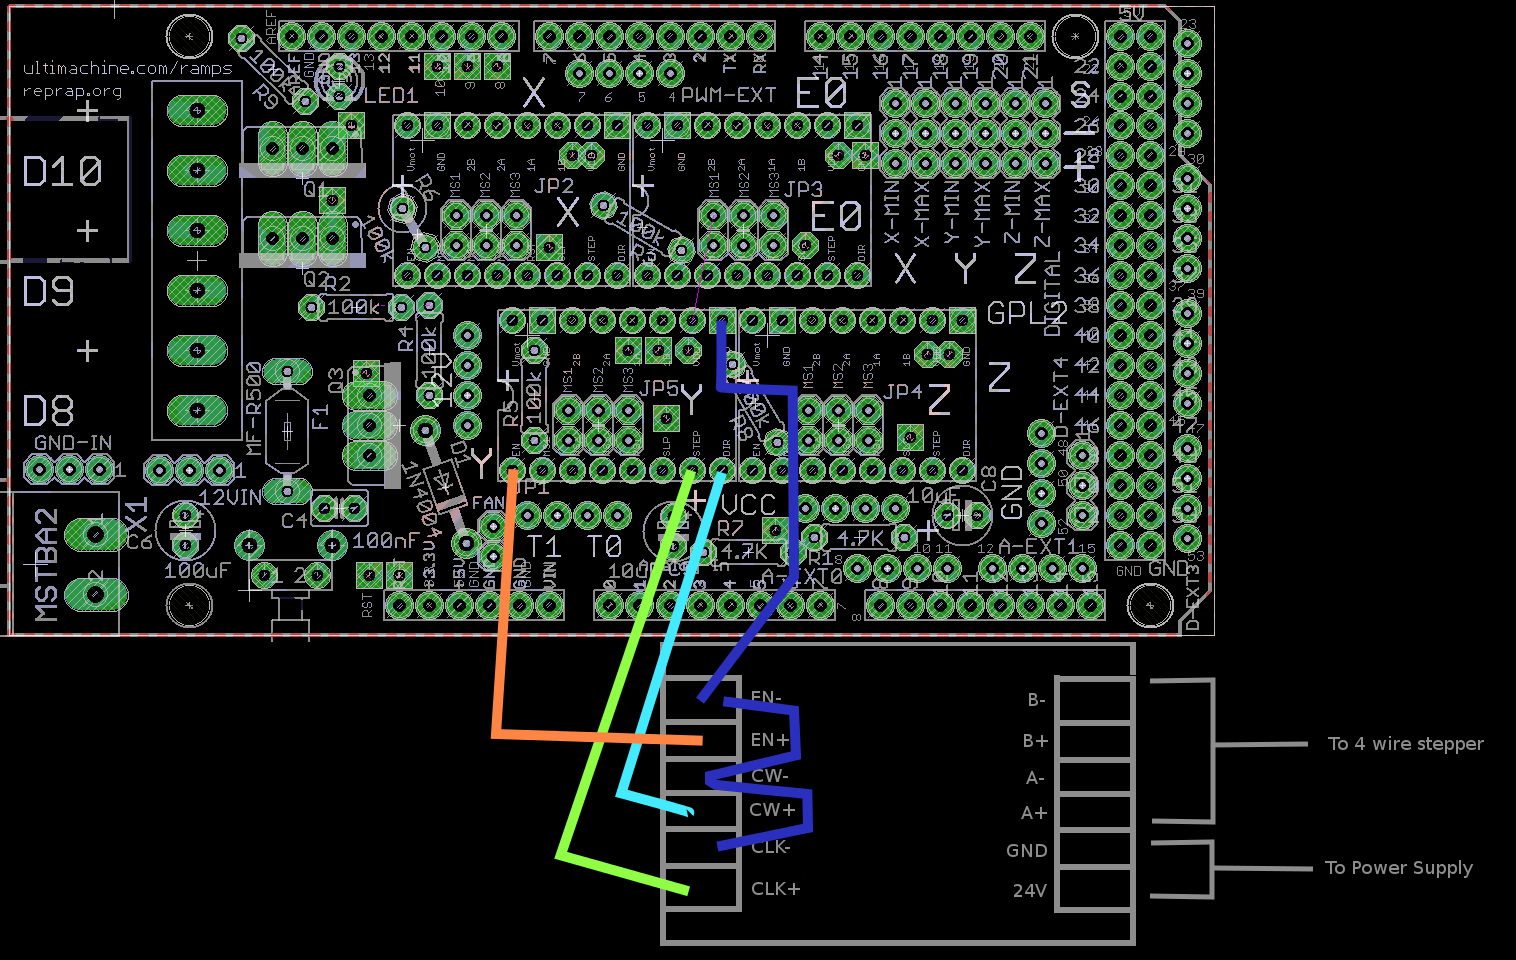 hight resolution of necessary wiring i have bashed together an example wiring diagram for replacing